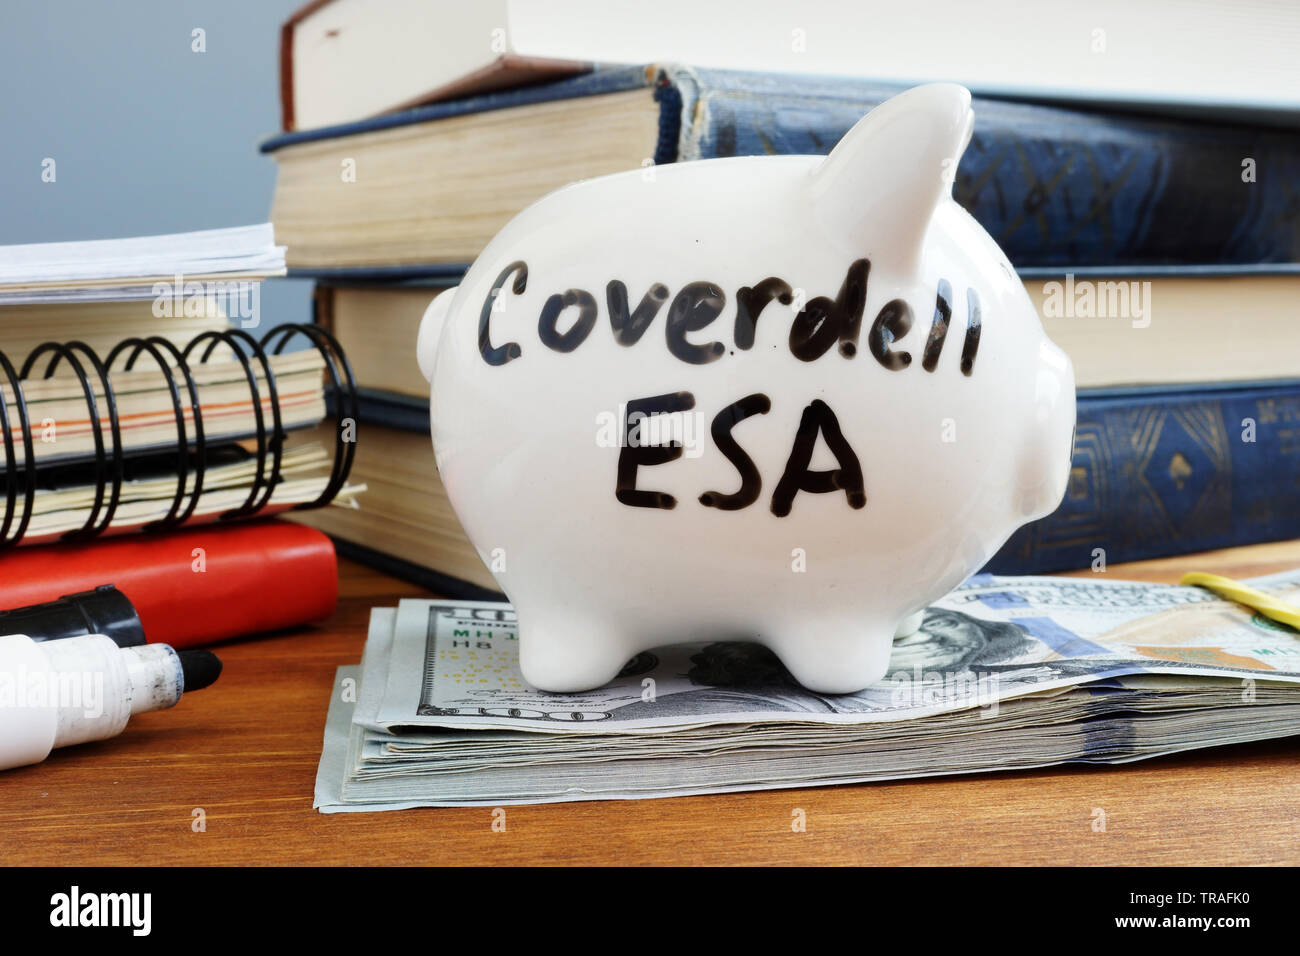 Coverdell ESA Education Saving Account. Piggy bank and money. - Stock Image